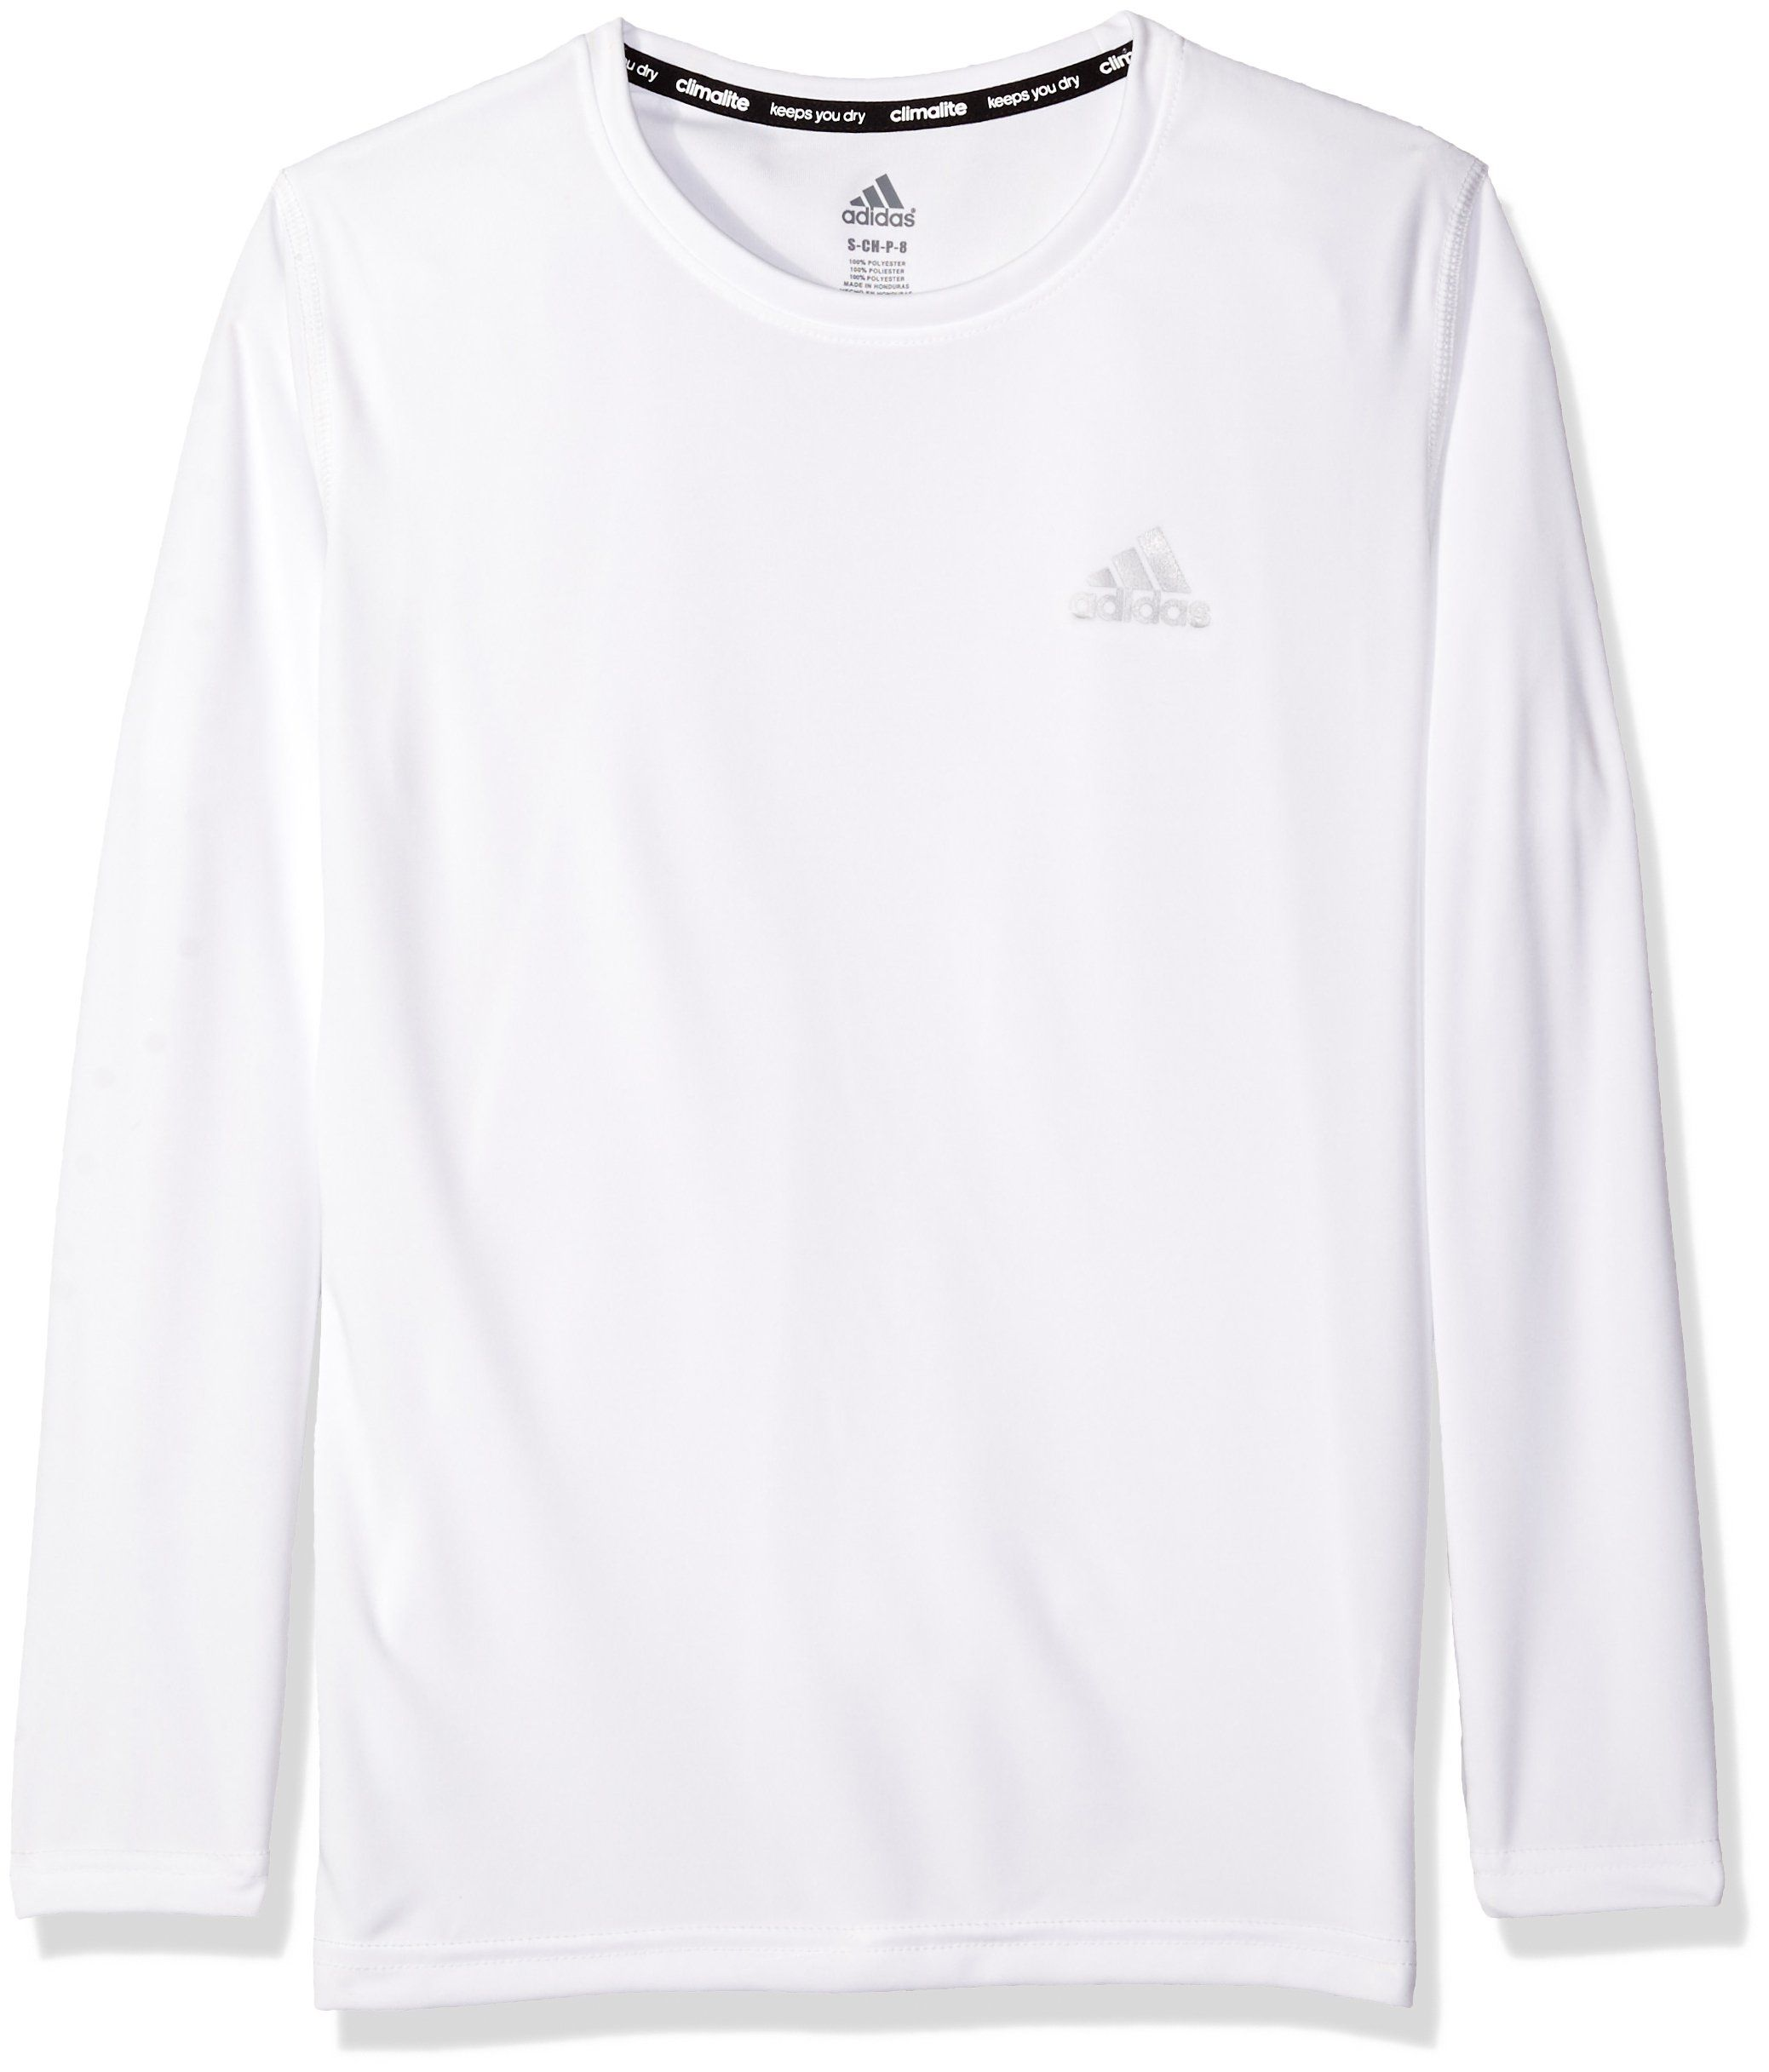 Tee Essential White Sleeve Clima Big Boys' Adidas X Large18 Long BpRfwF